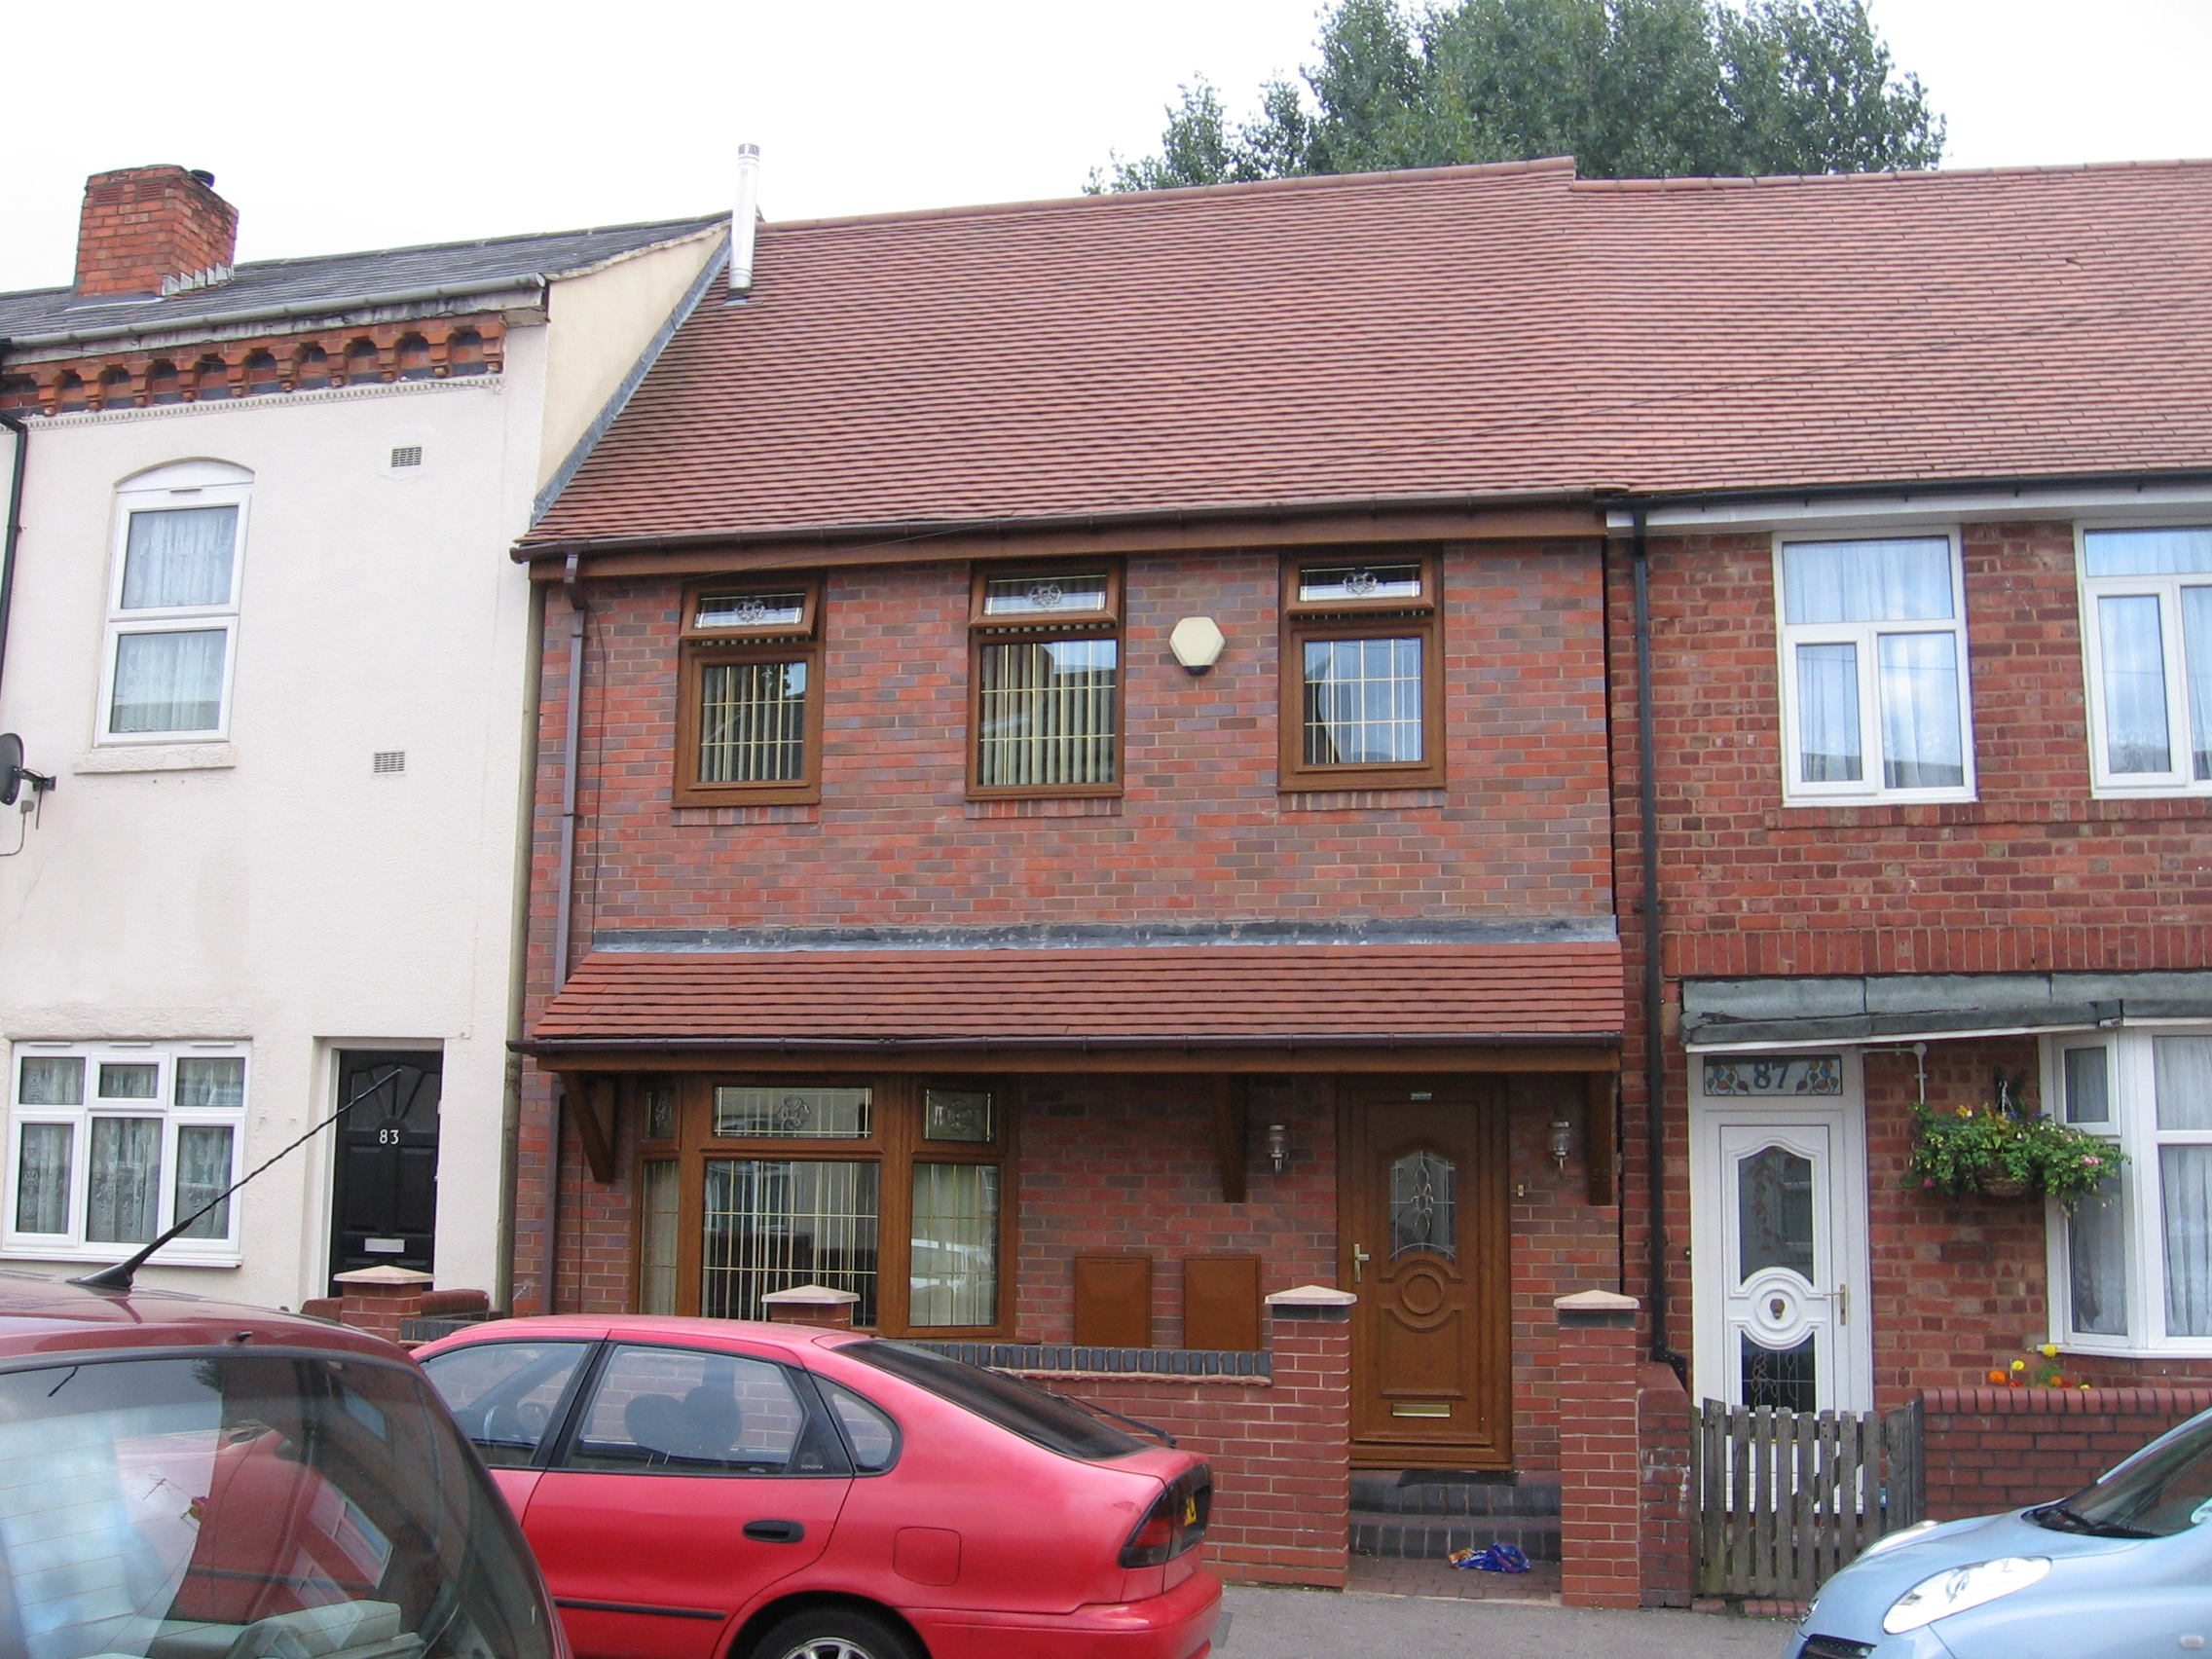 5 Bedroom Terraced House To Rent Wilson Rd Perry Barr Birmingham B B19 1jg